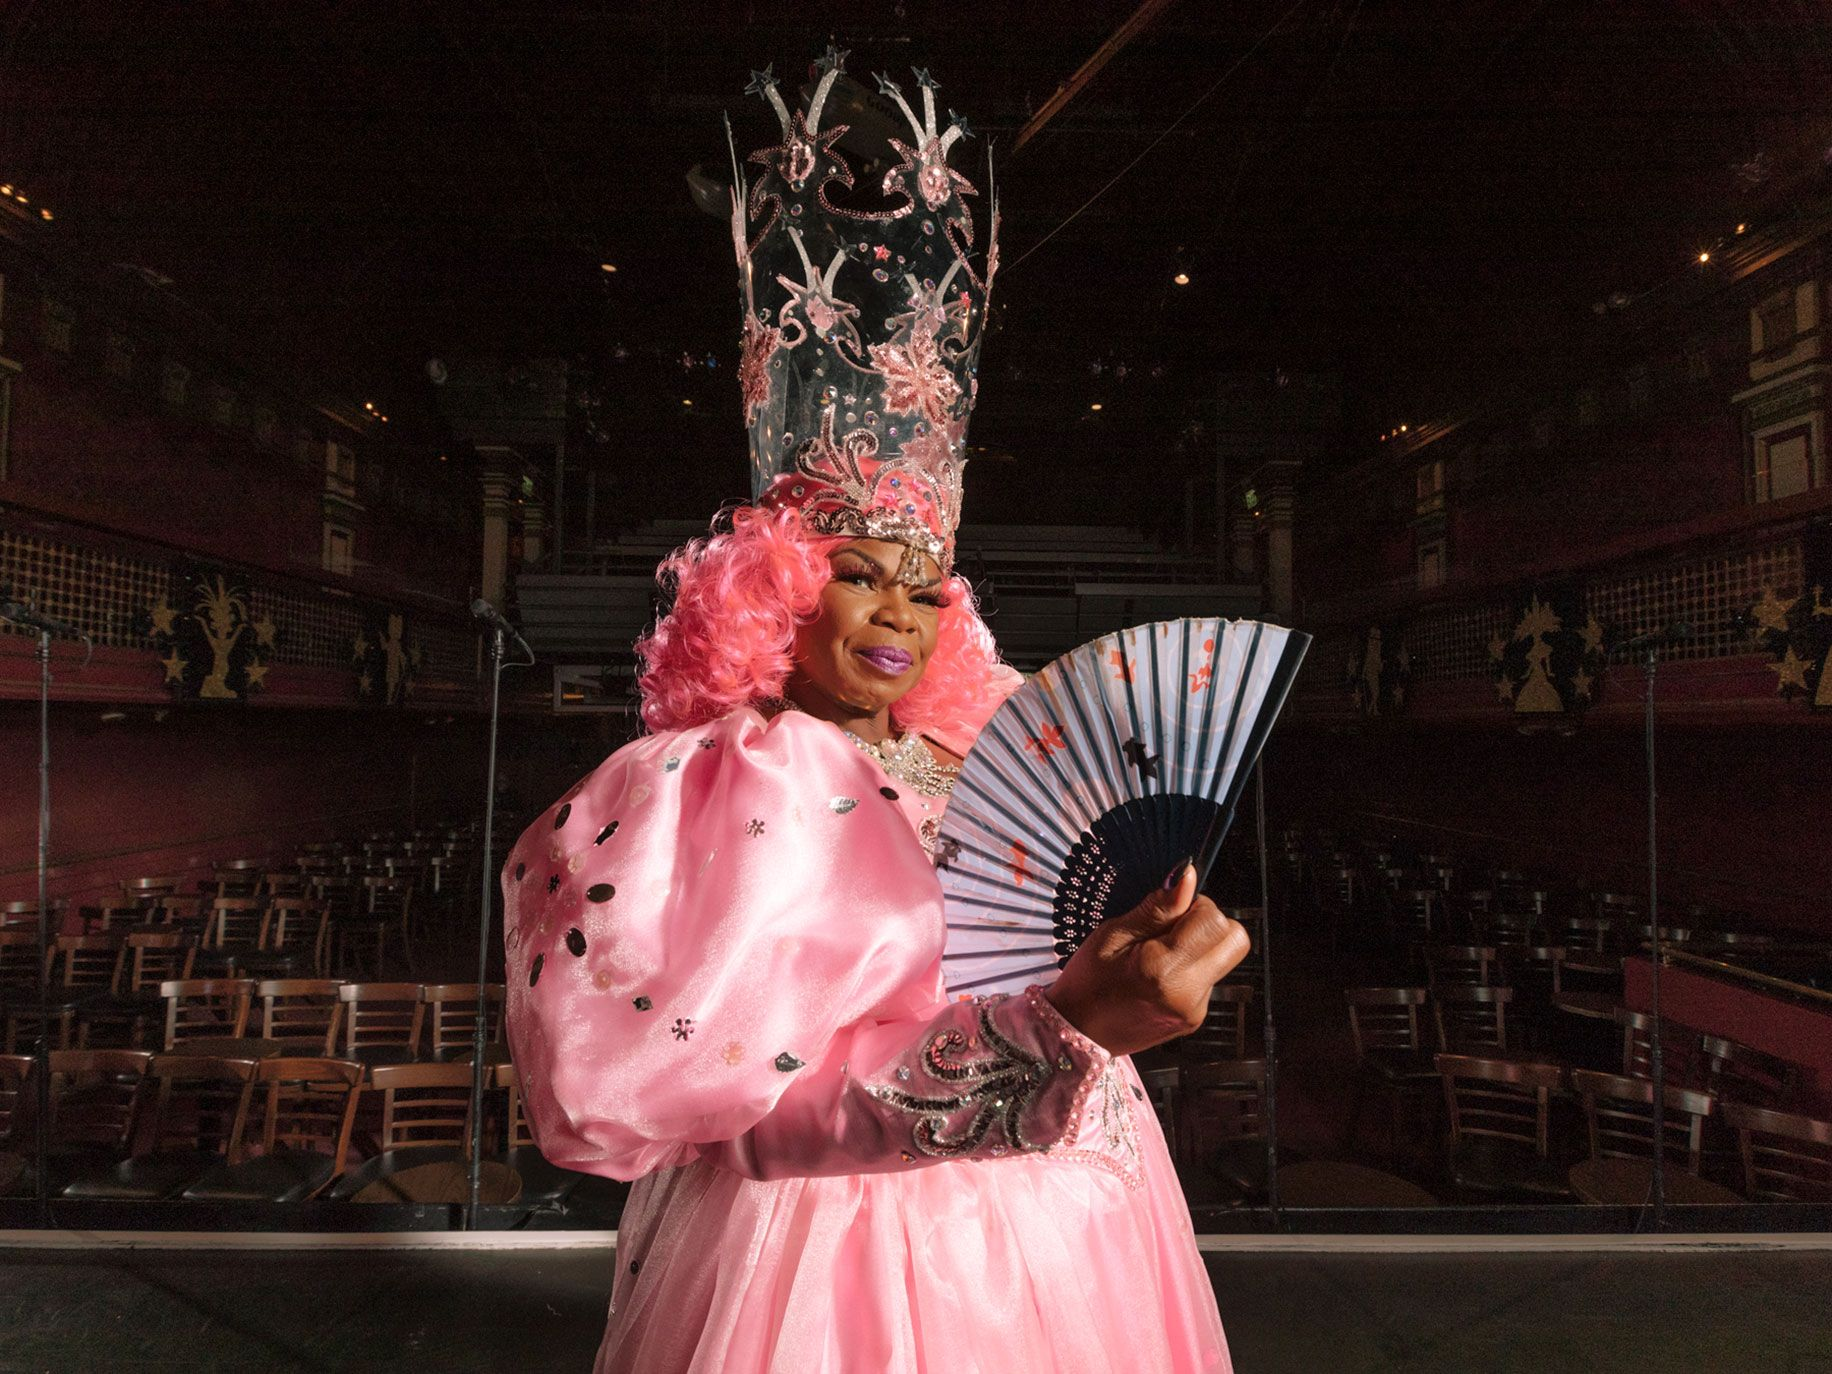 Renée Lubin helps open the show as Glinda the Good Witch from The Wizard of Oz.